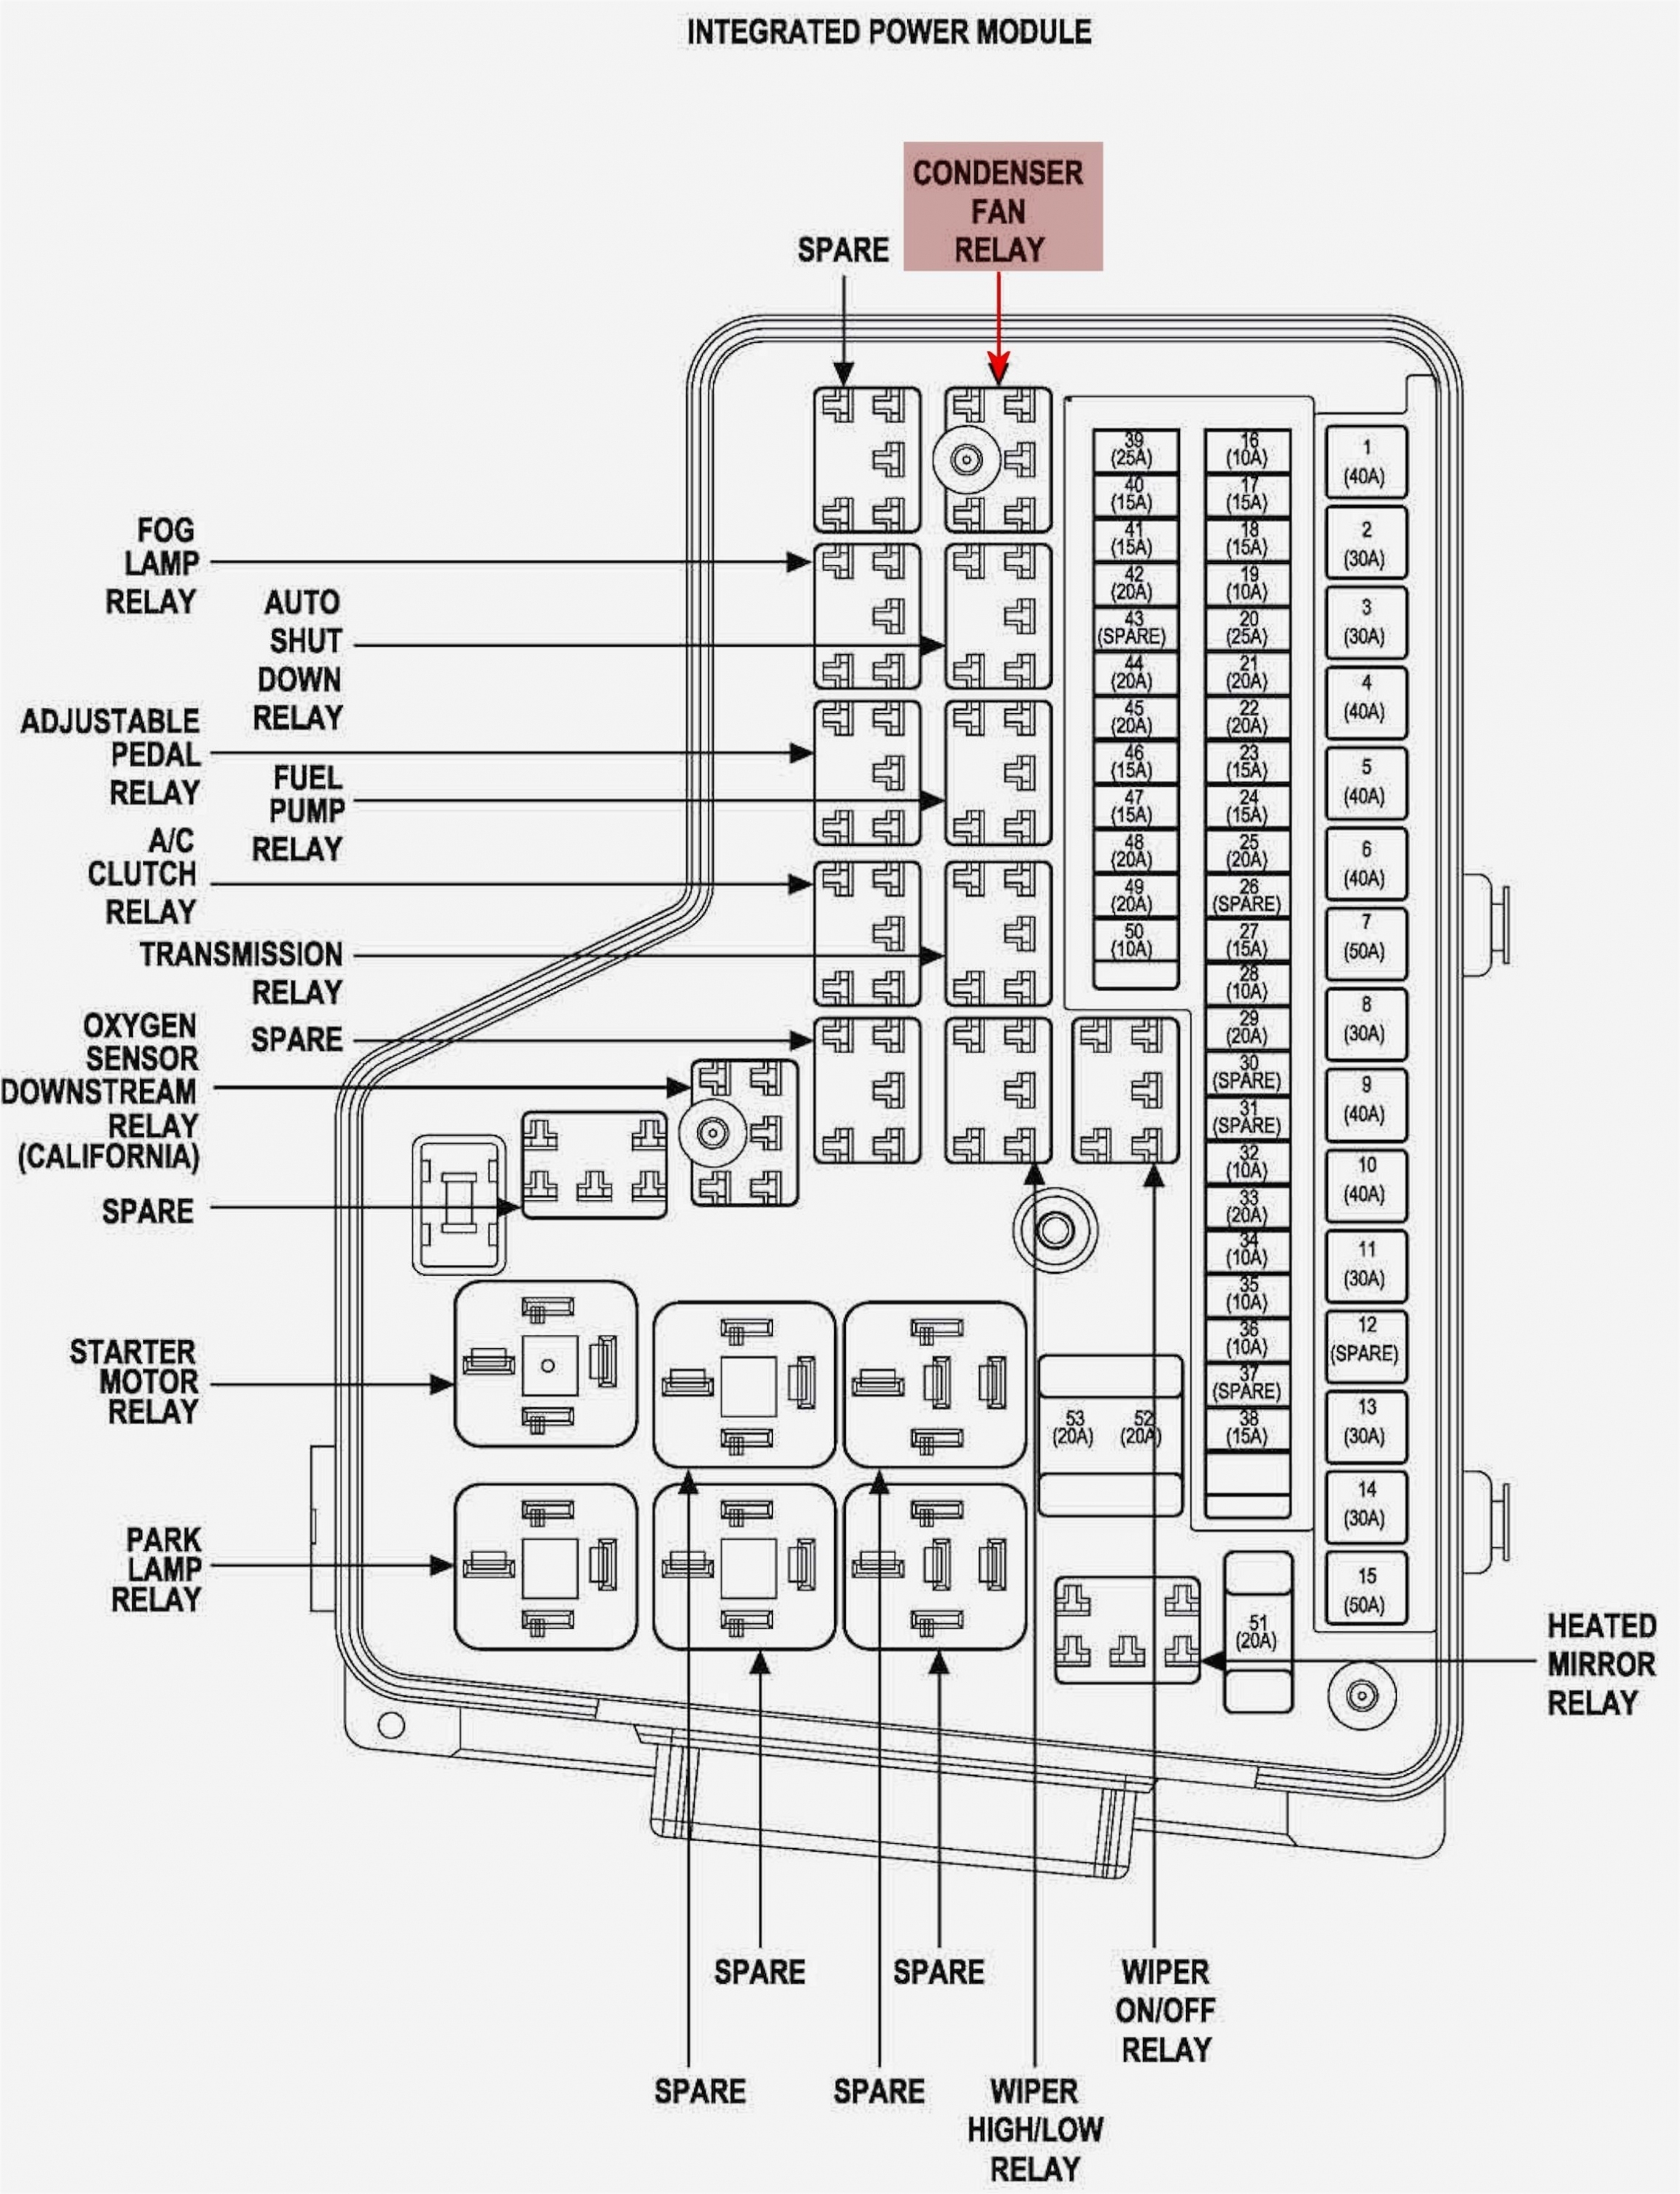 09 dodge ram 2500 fuse diagram online wiring diagram2009 dodge ram 2500 fuse box wiring diagram read dodge ram 2500 bumper 09 dodge ram 2500 fuse diagram